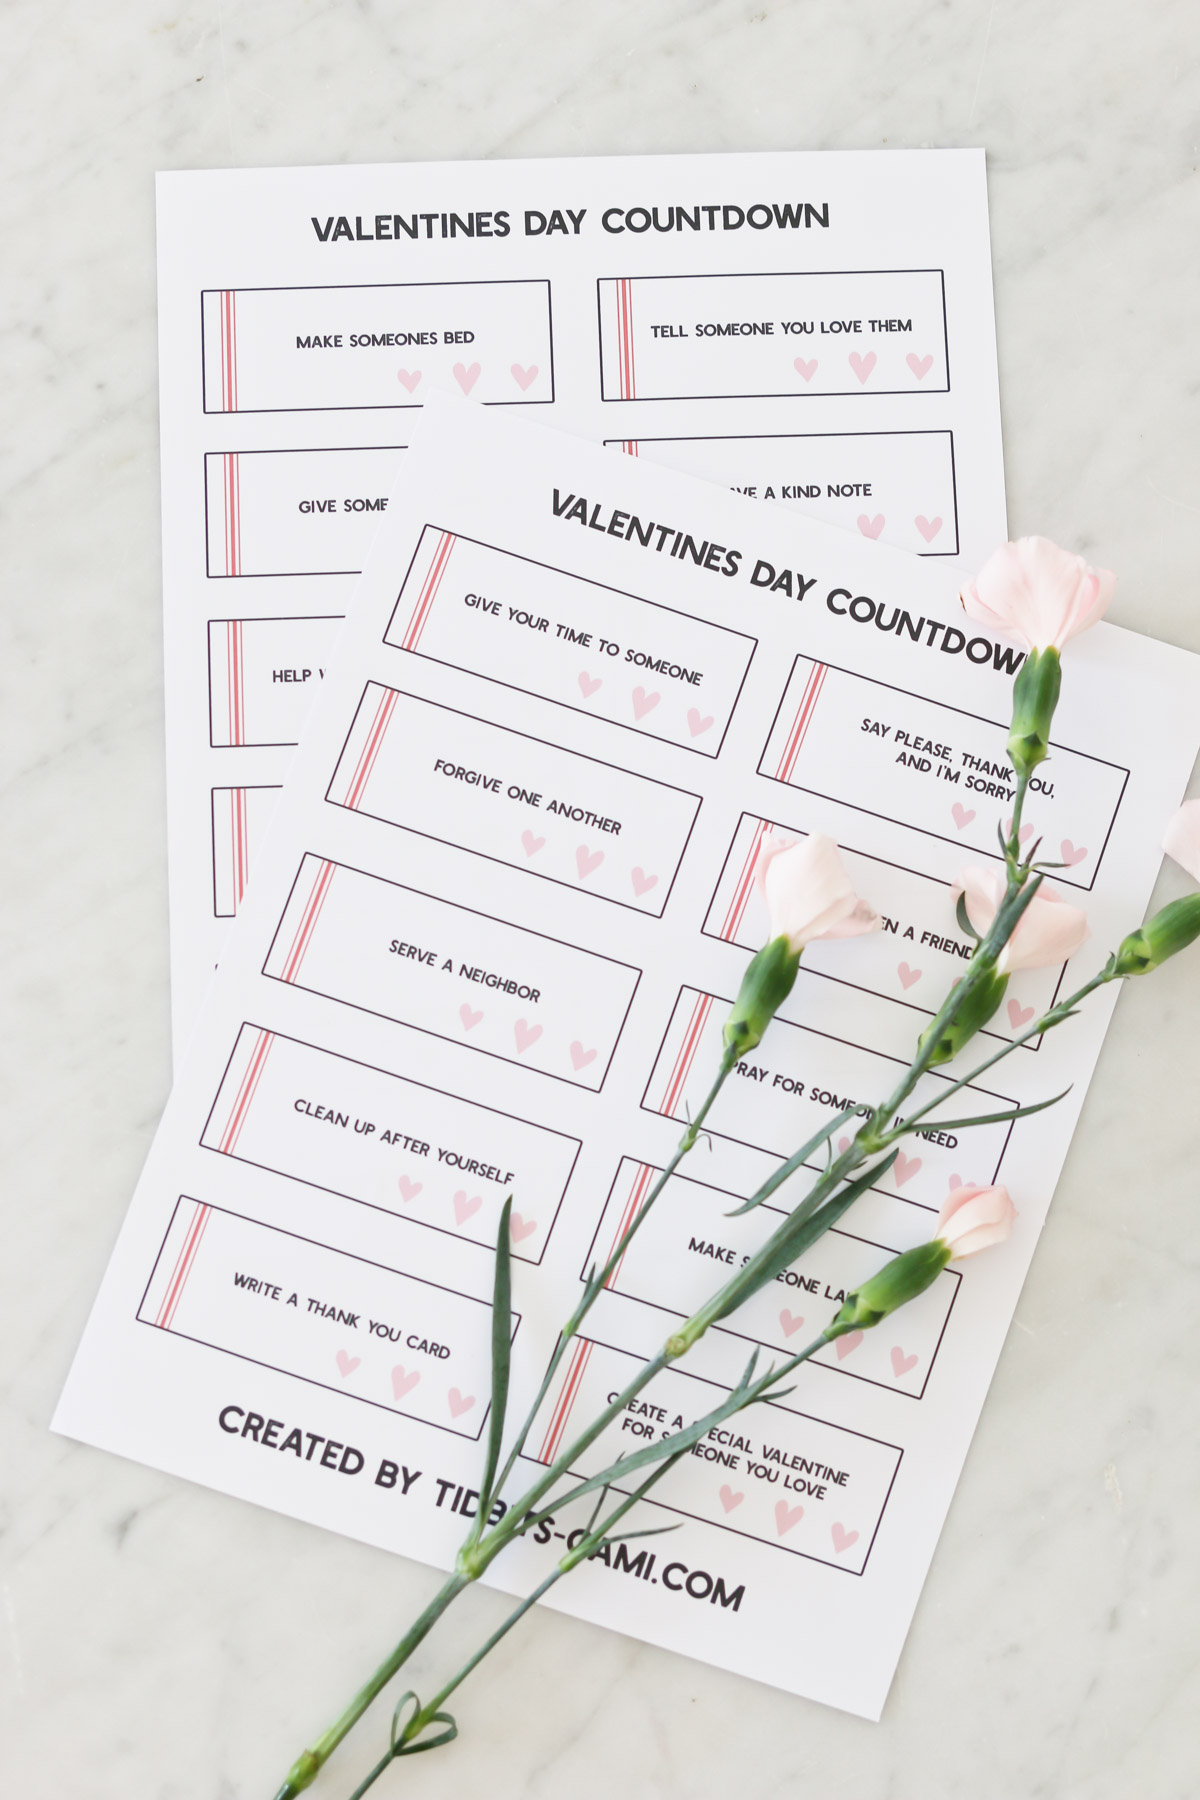 Valentines Day Countdown Printable | 14+ Acts of Love and Kindness